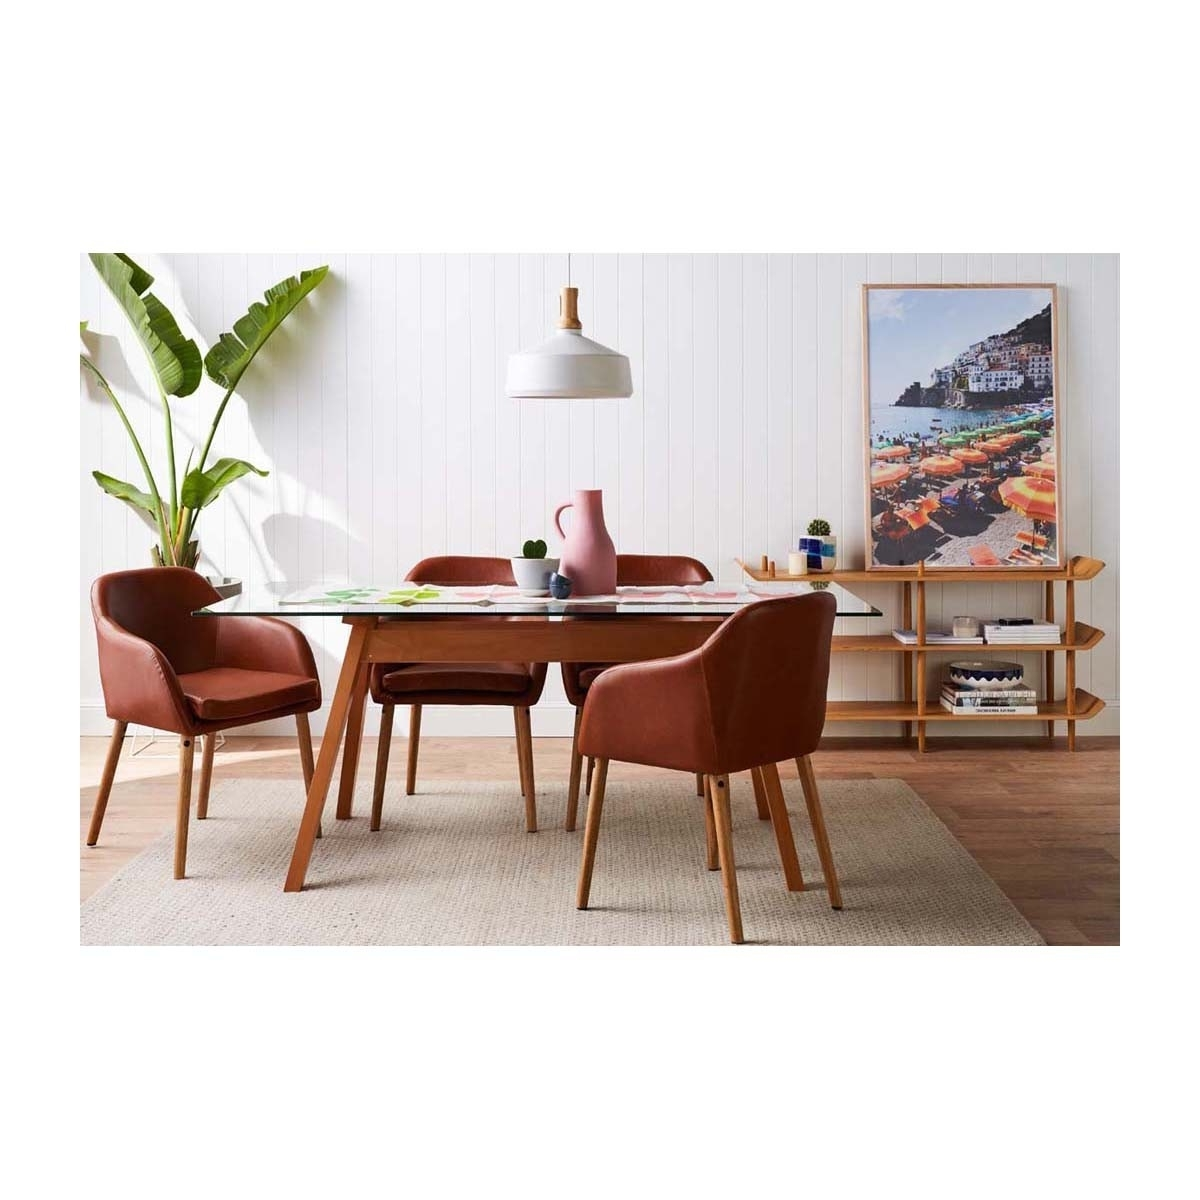 Life Interiors – Hudson Dining Chair (Tan Leatherette) – Modern With Regard To Well Known Hudson Dining Tables And Chairs (View 21 of 25)